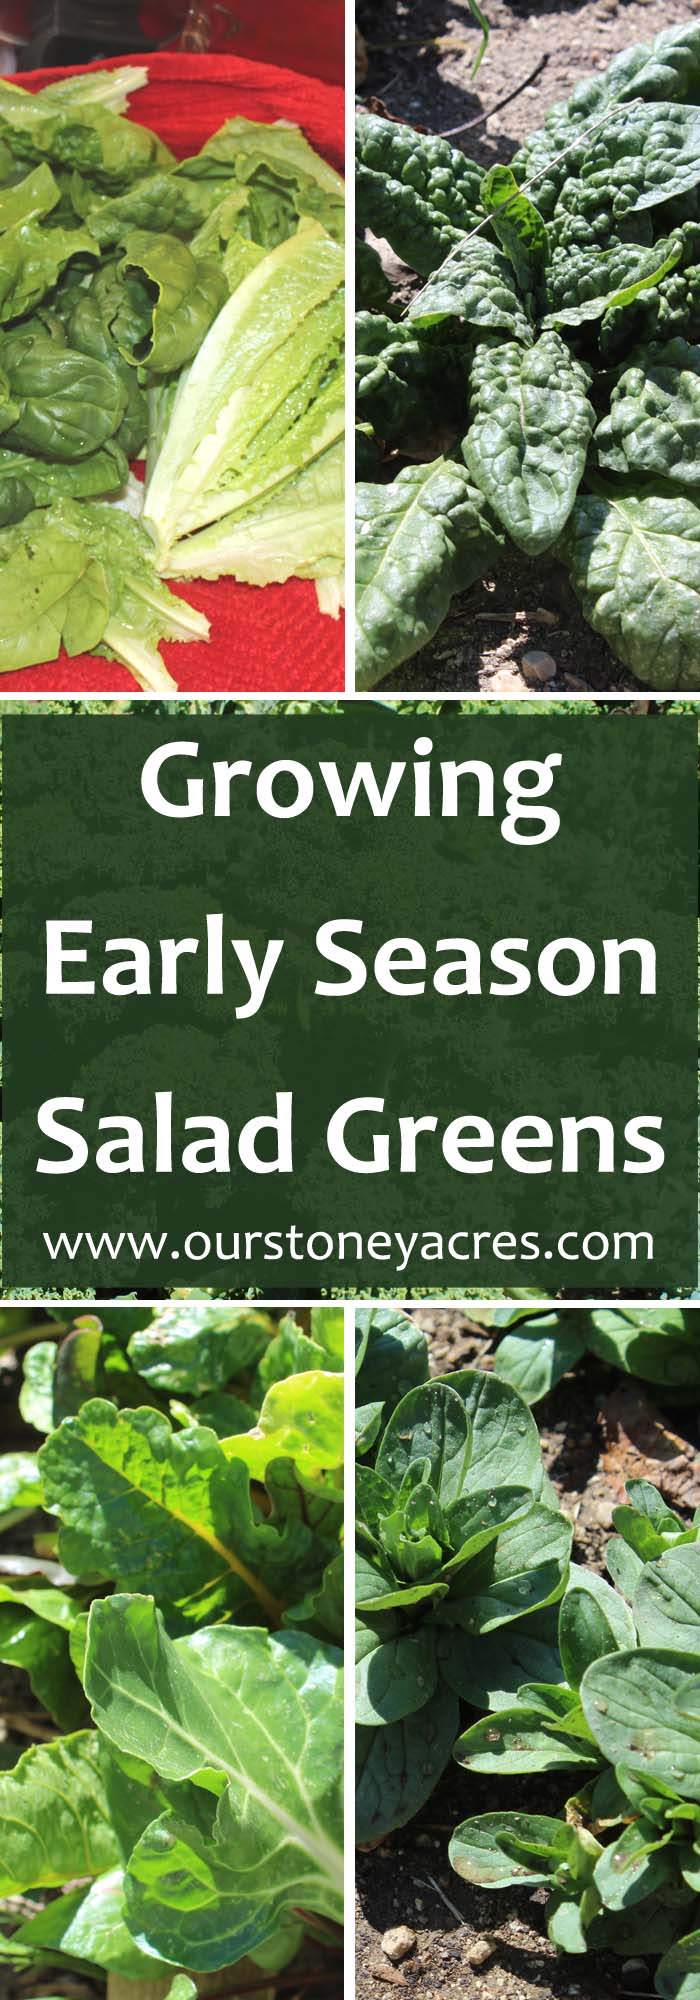 Growing Early Season Salad Greens